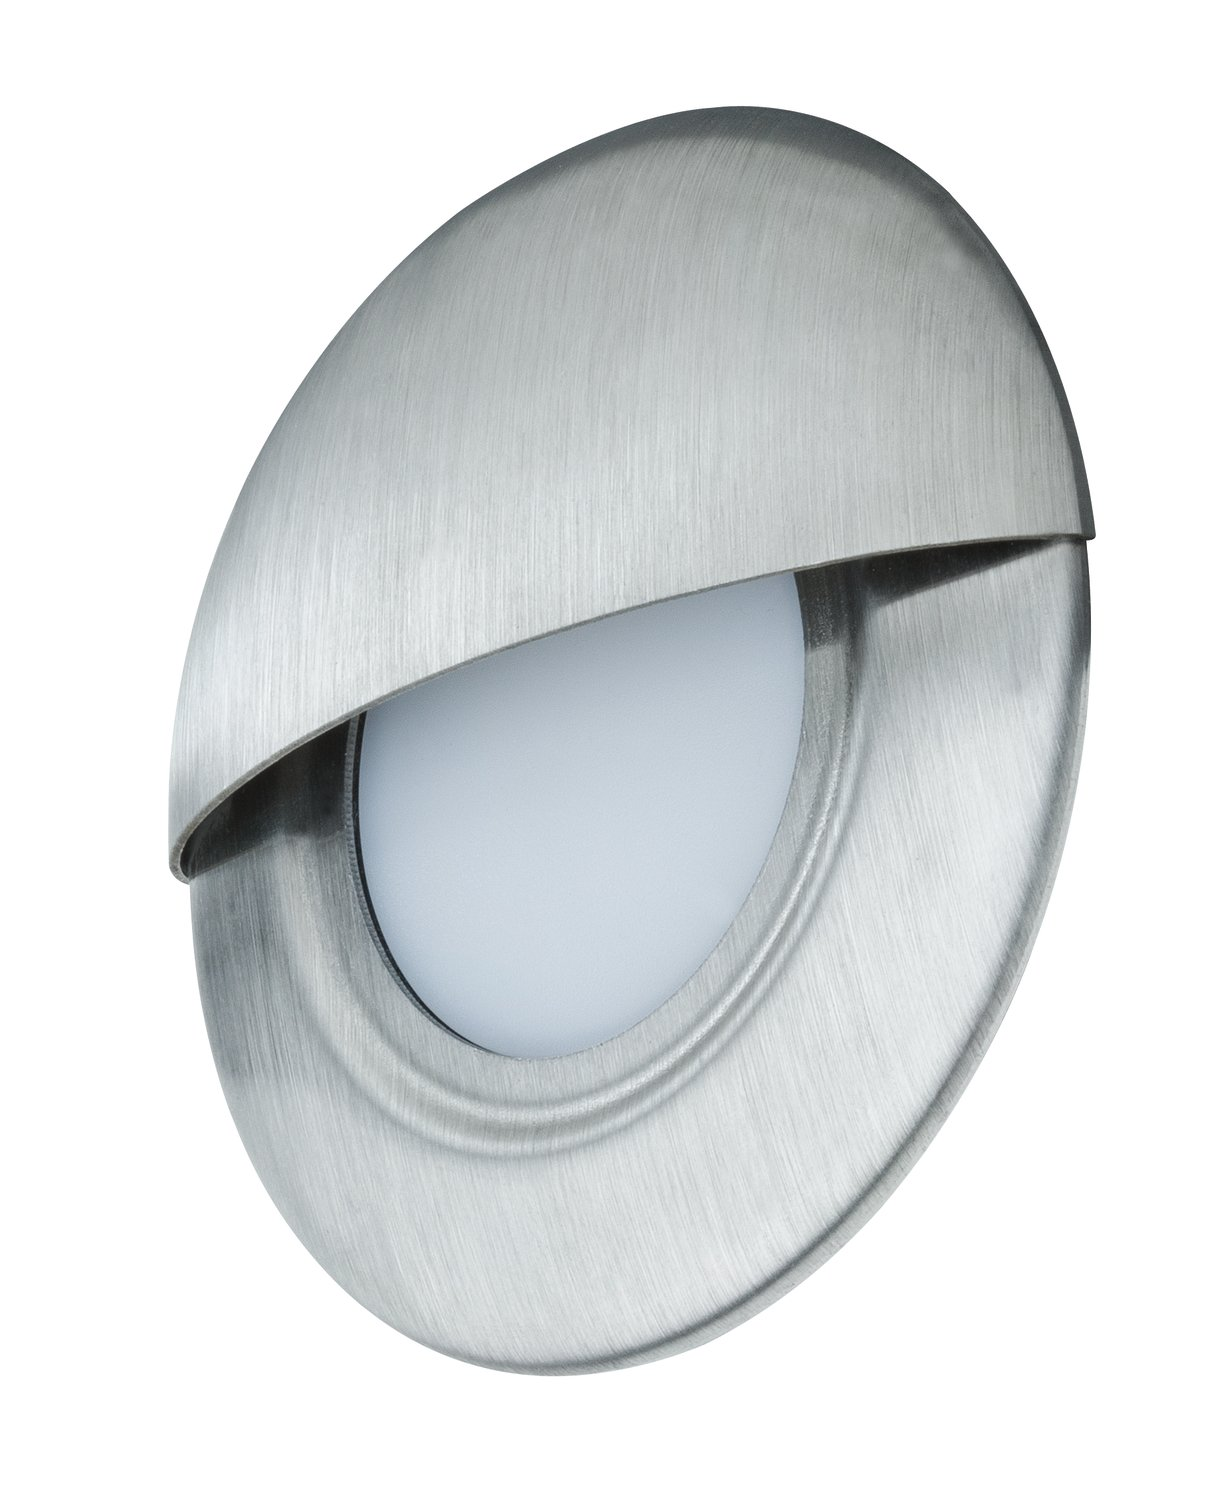 LED-wandinbouwlamp Special Line rond 87mm Edelstaal